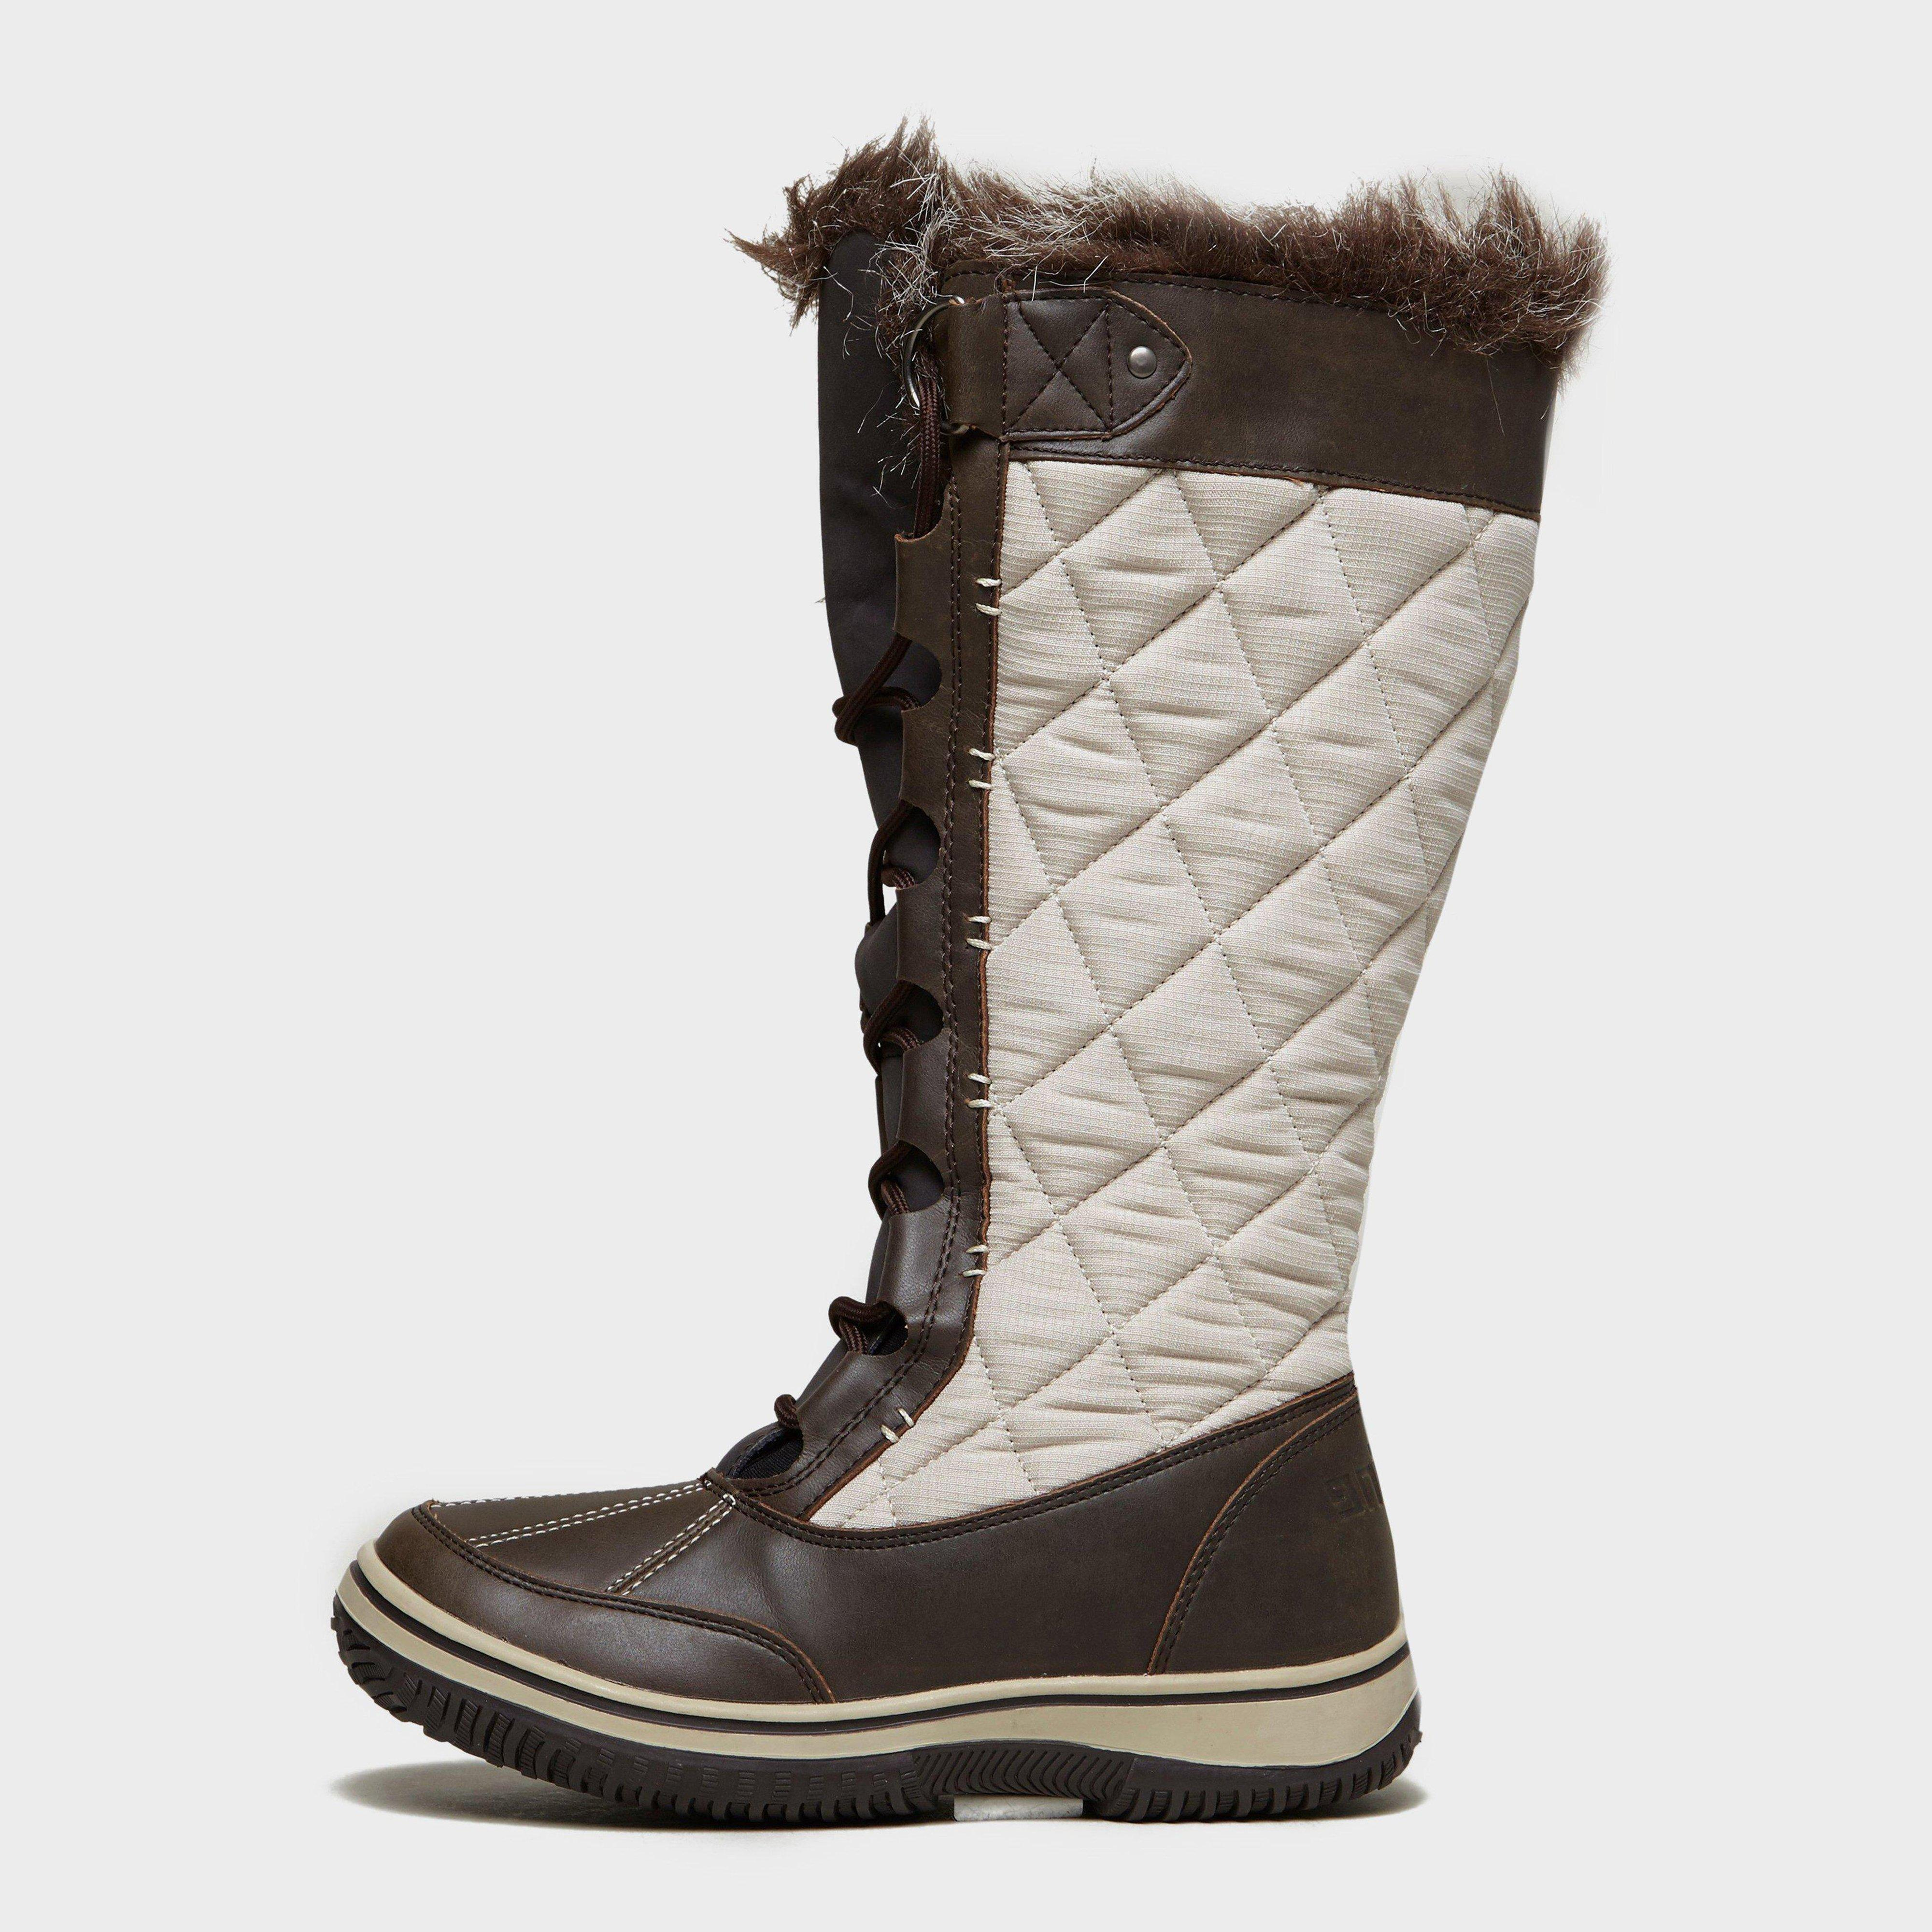 Creative White Rock Flake Waterproof Snow Boots  Click To View A Larger Image